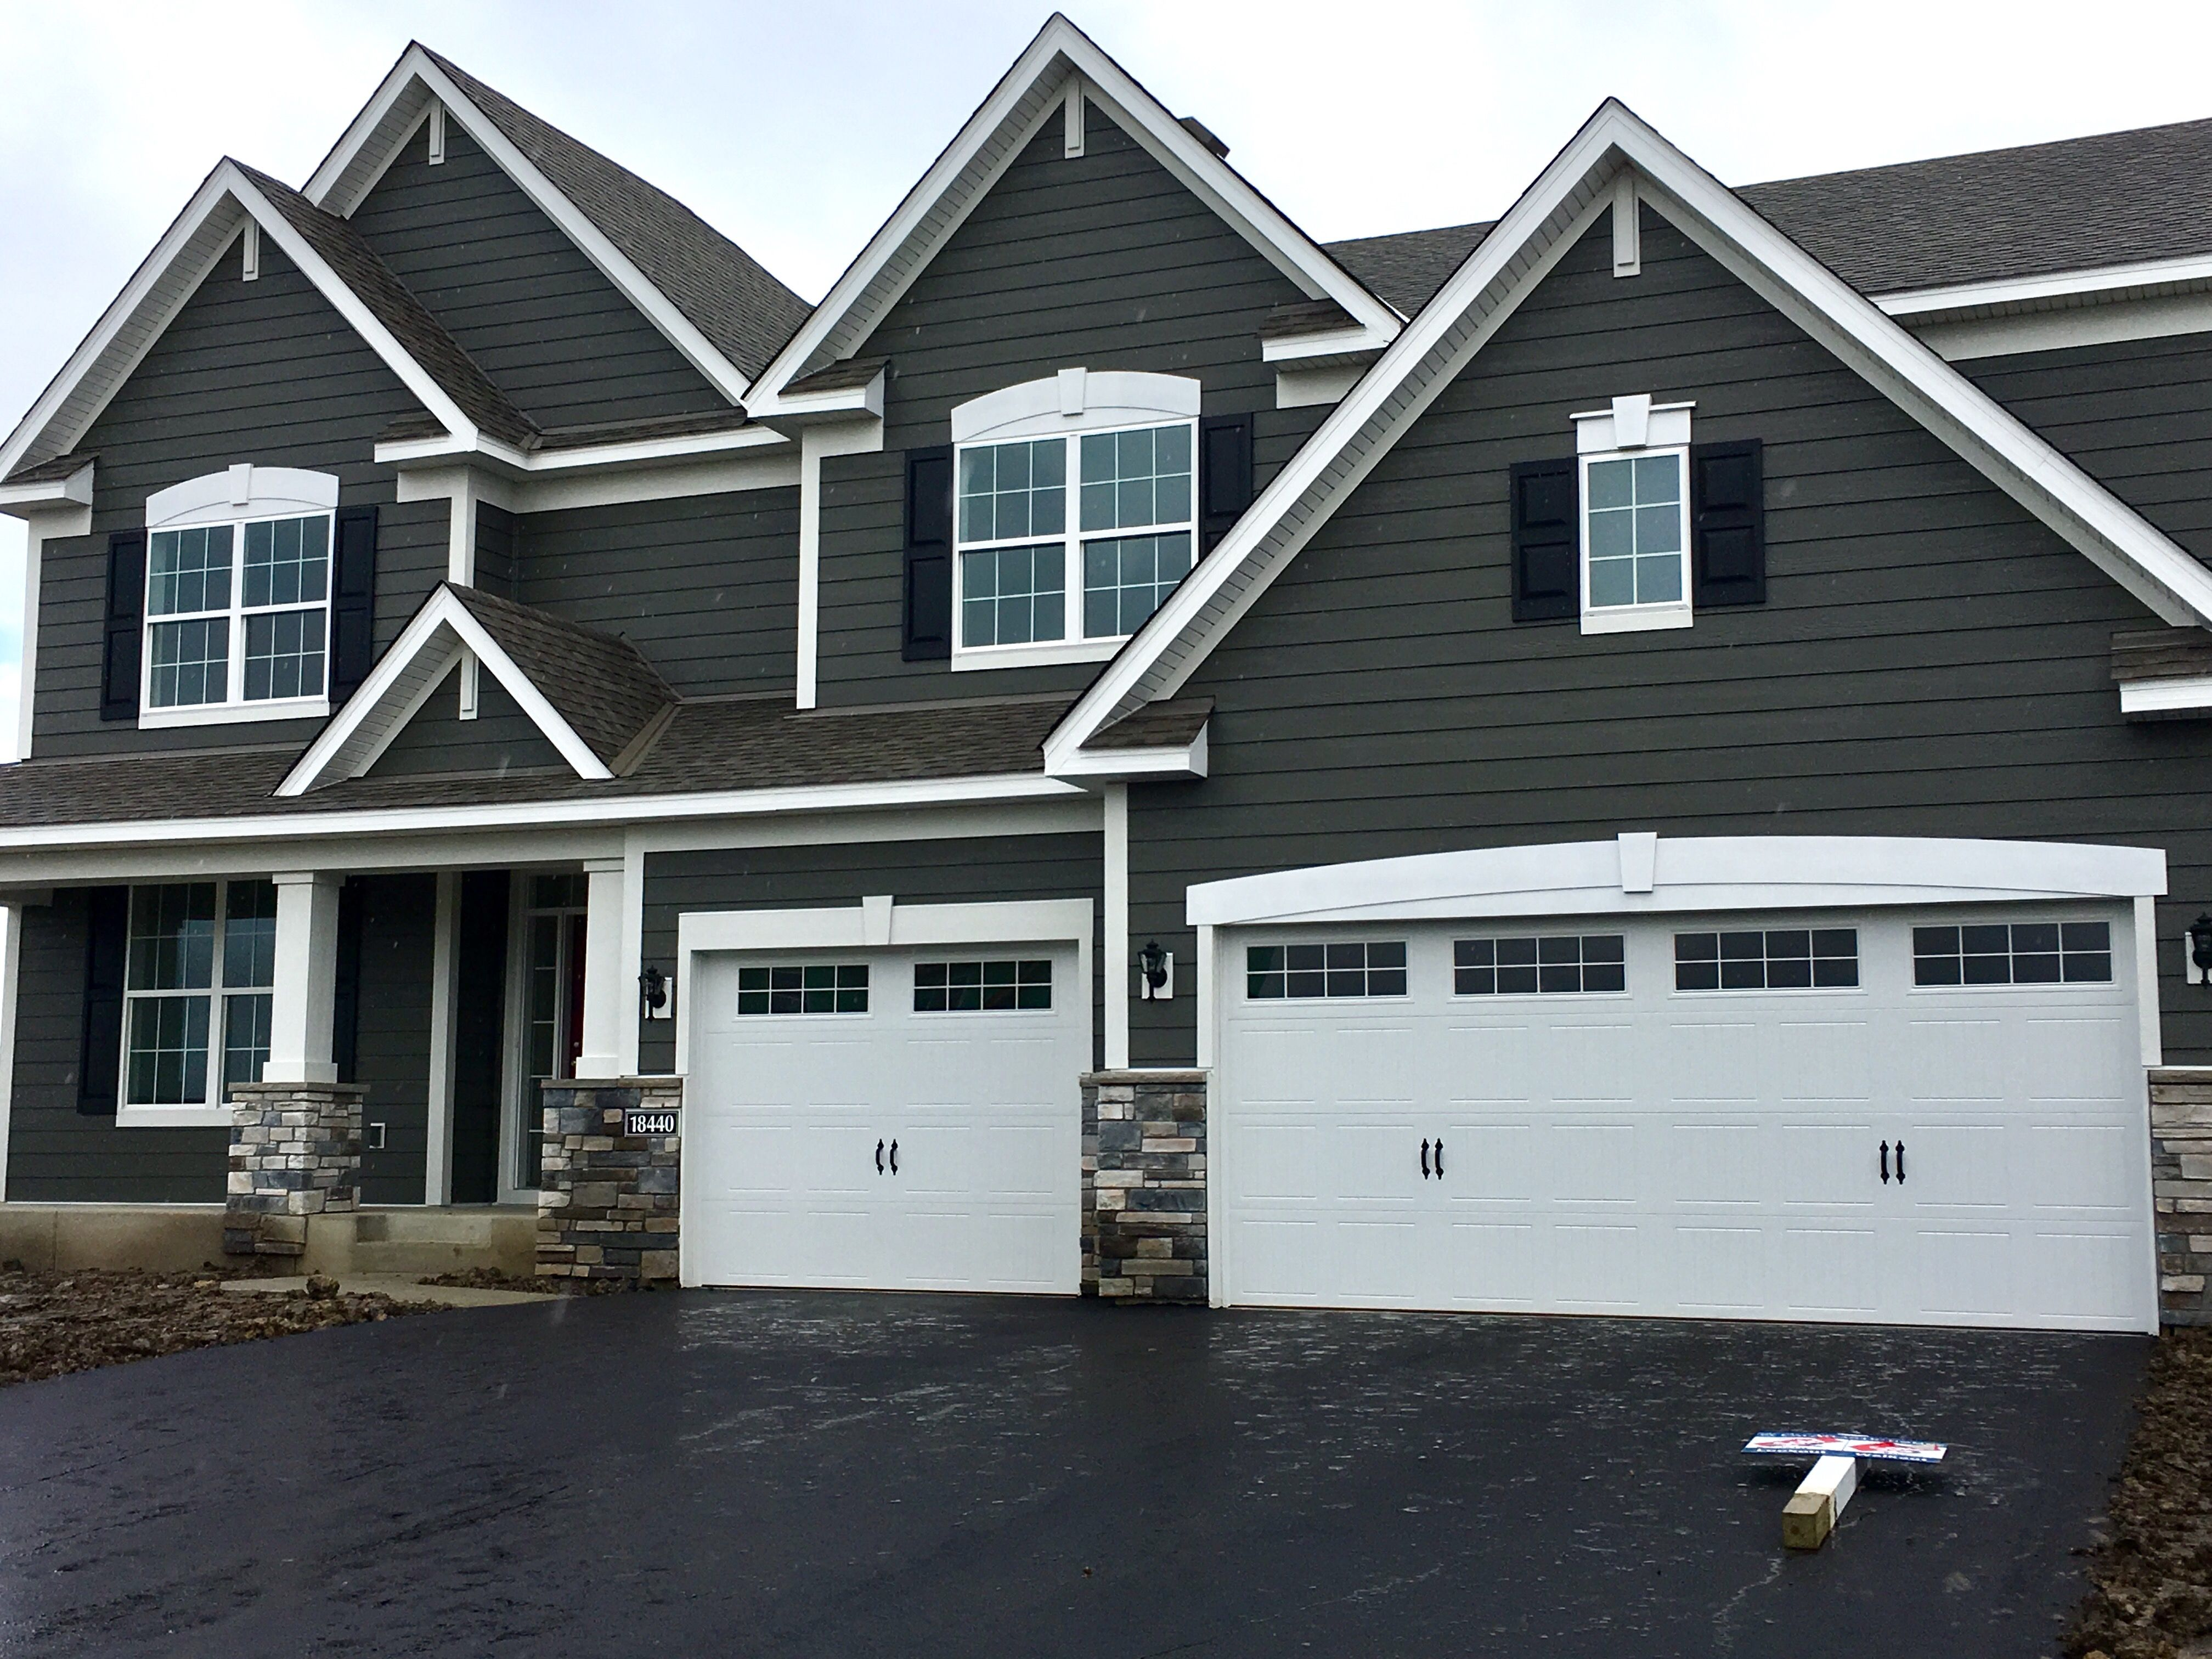 Lp smartside charcoal new house pinterest lp and house for Lp smartside prefinished siding colors